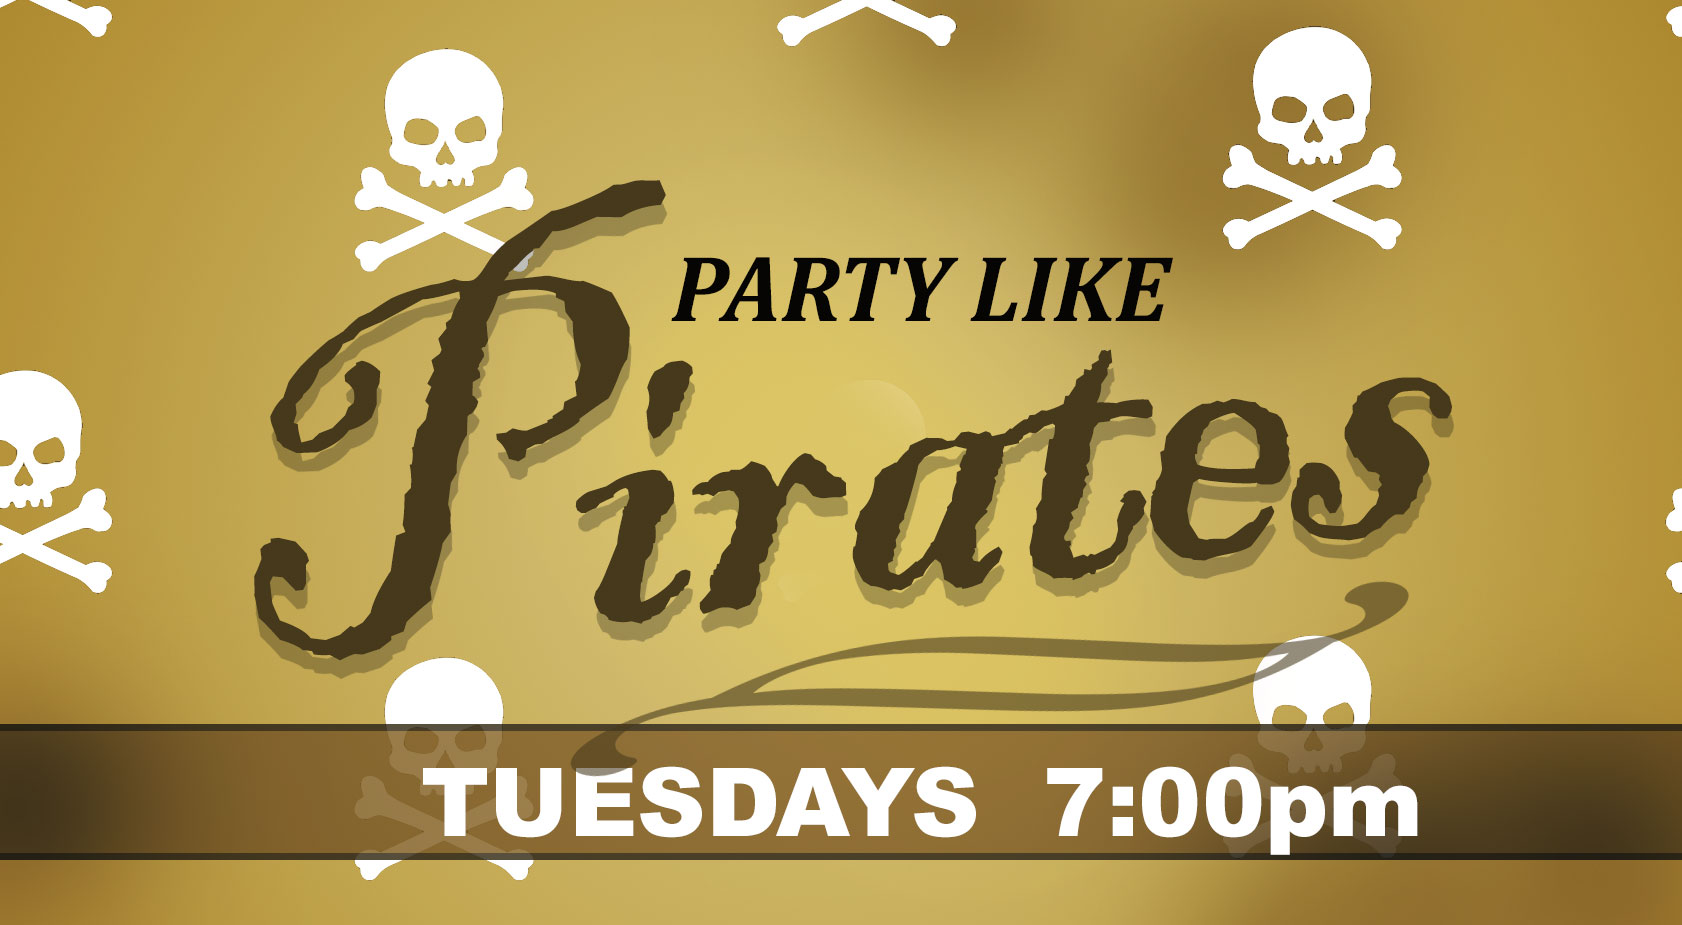 Tuesday Party Like Pirates